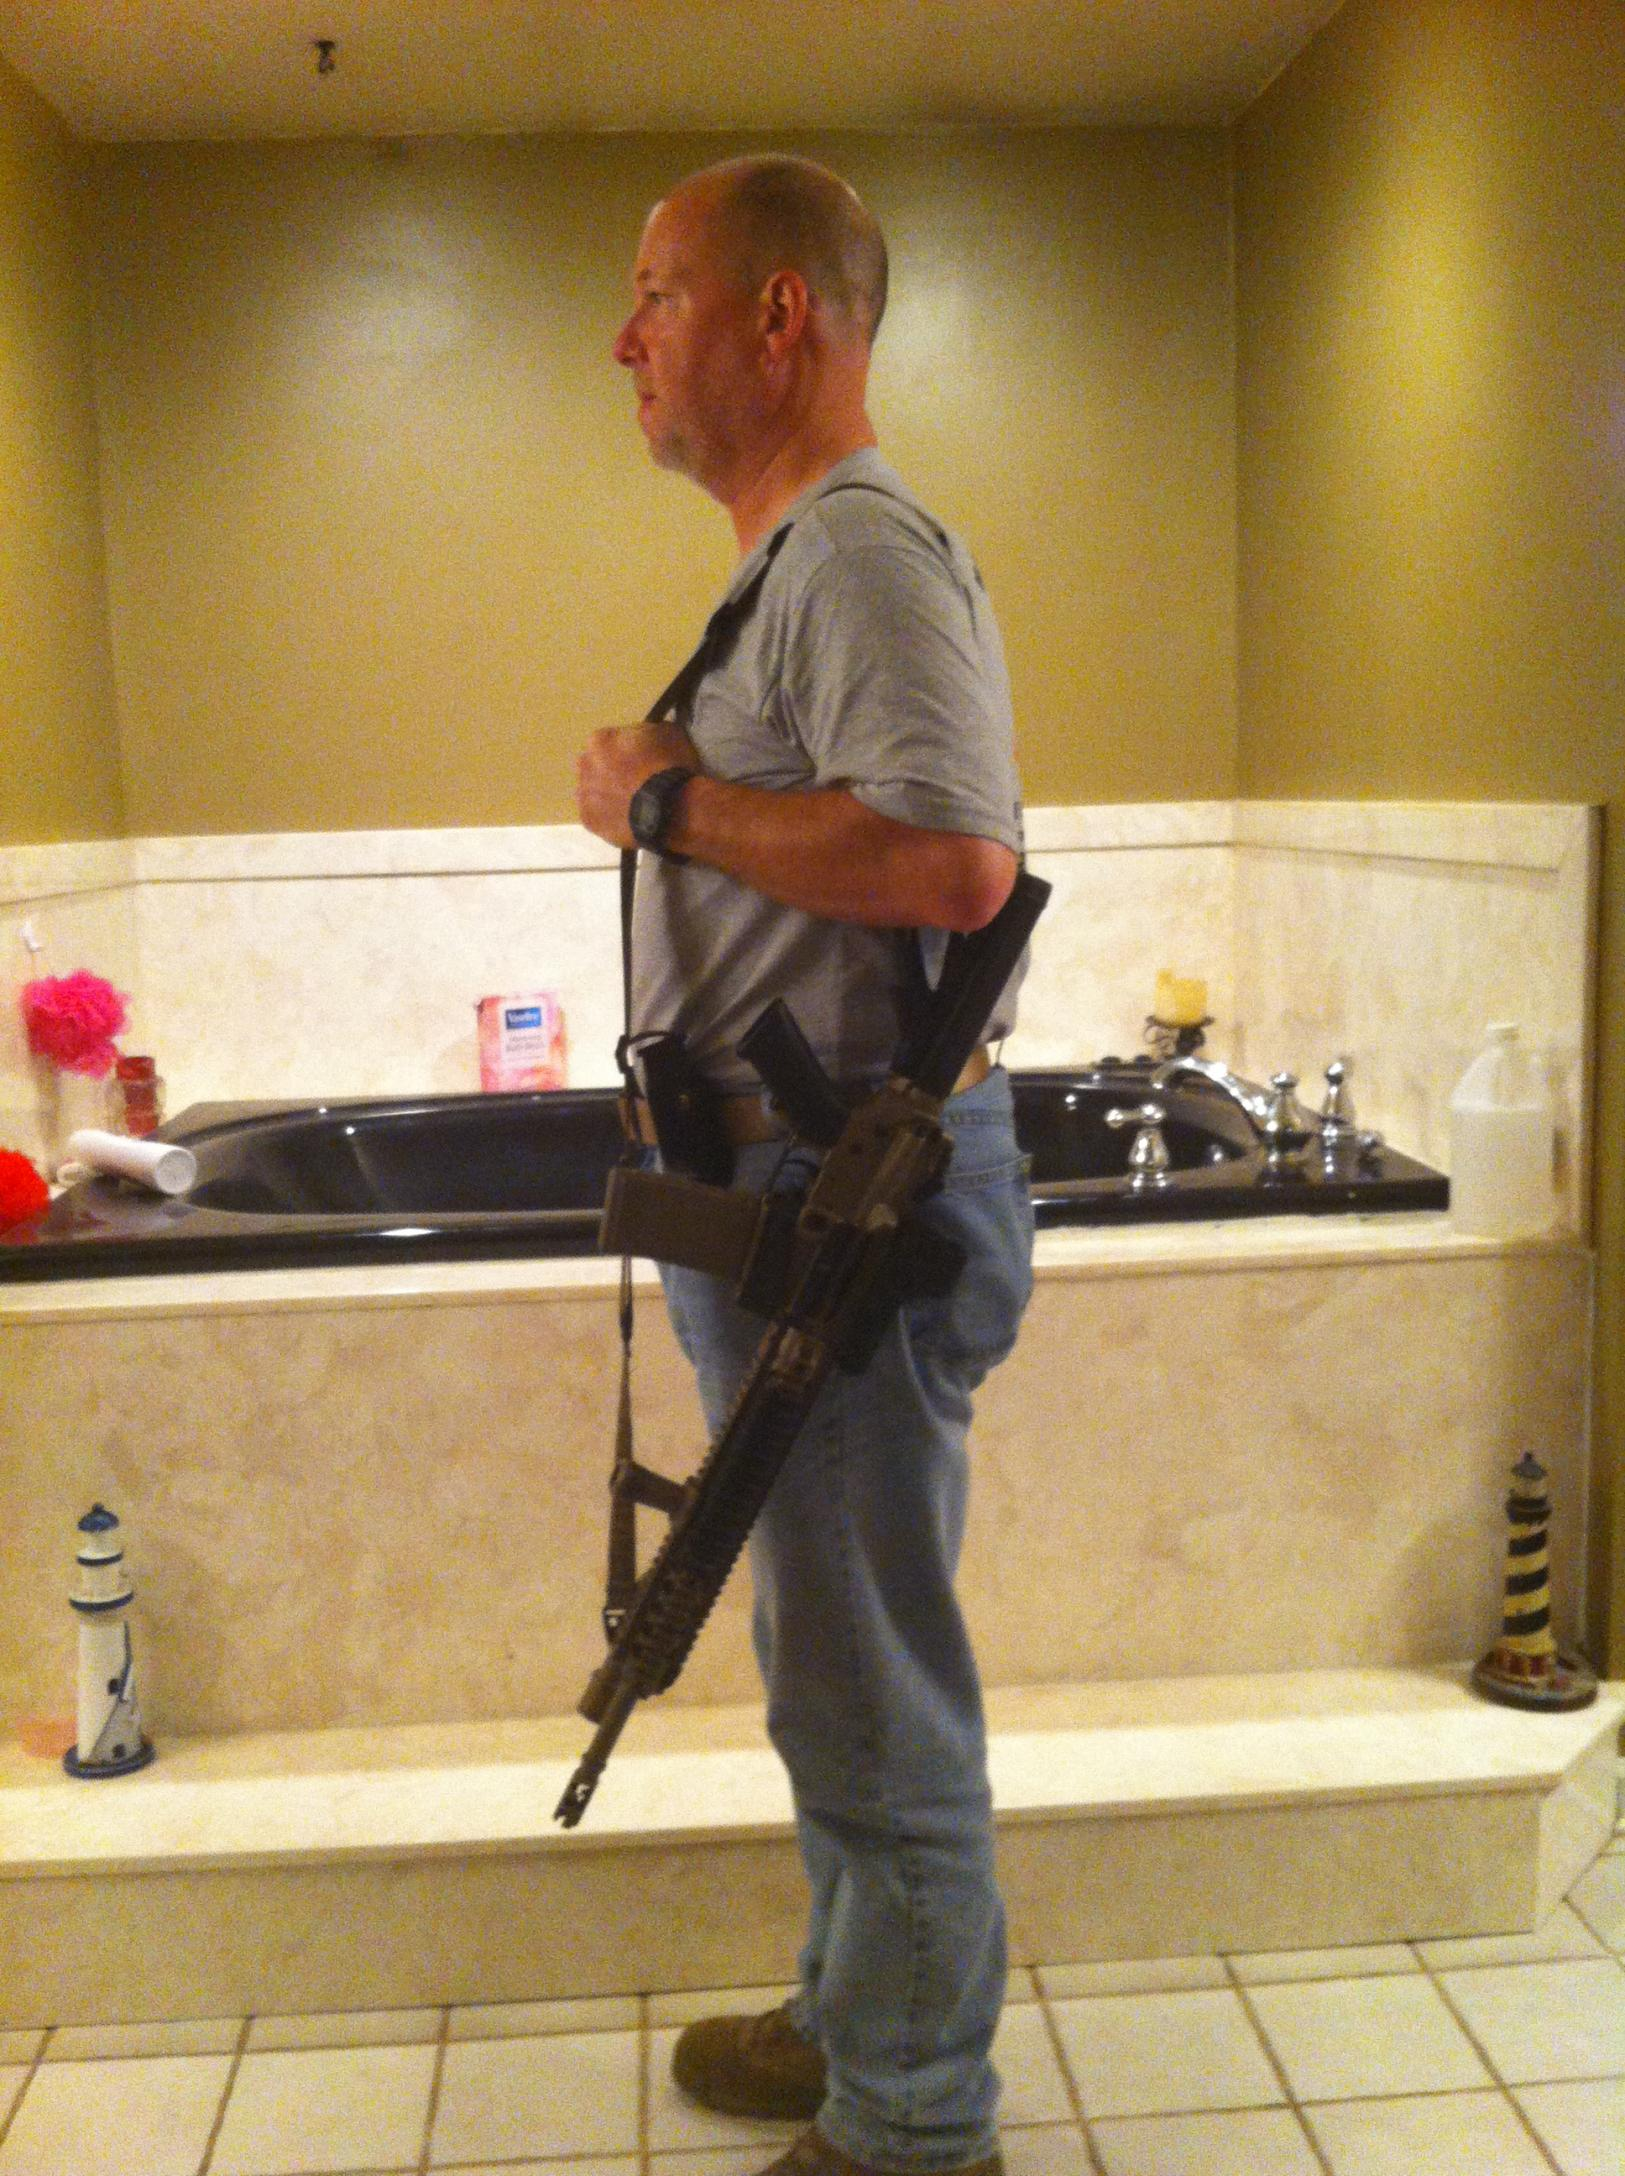 Defensive carry method, when carrying openly -- sidearms, long guns-rifle-slung-001.jpg